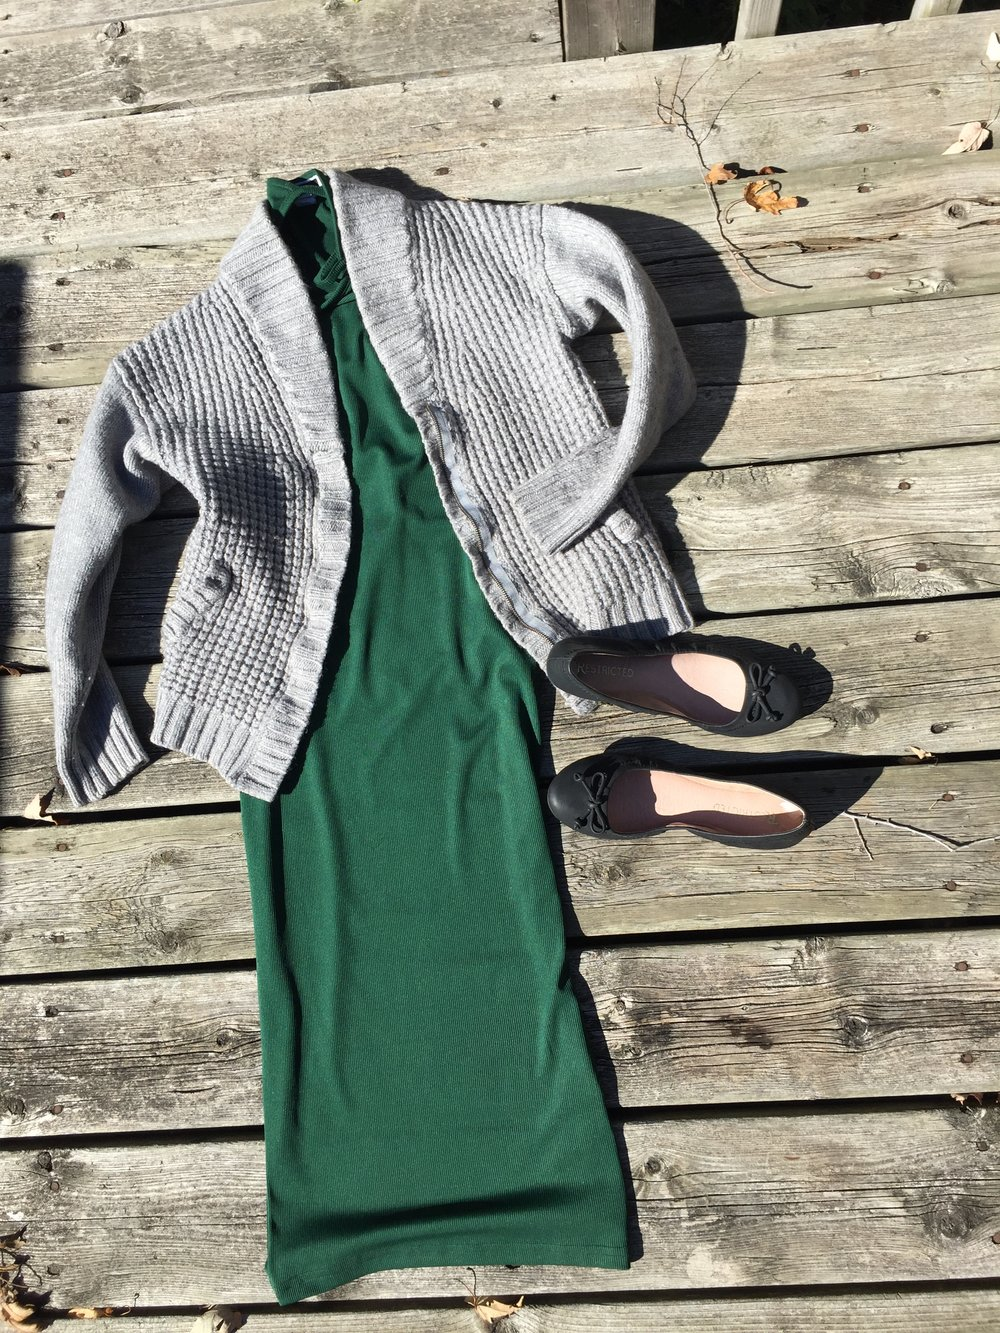 Green midi dress with grey grampa style sweater and black flats